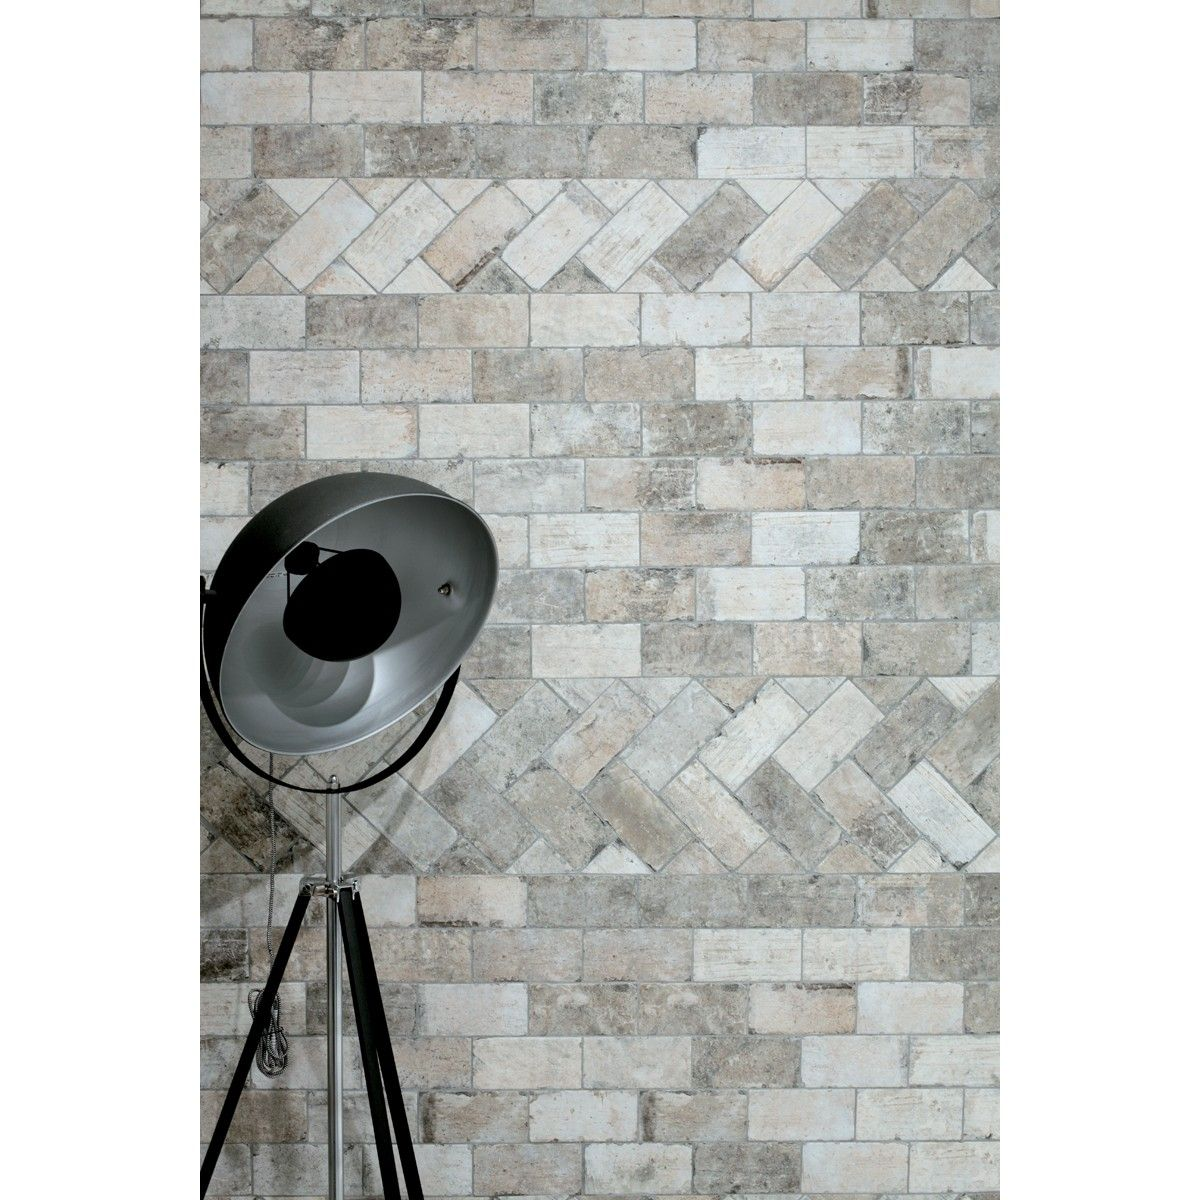 New York Soho Tiles Porcelain Wall Amp Floor Tiles In 2019